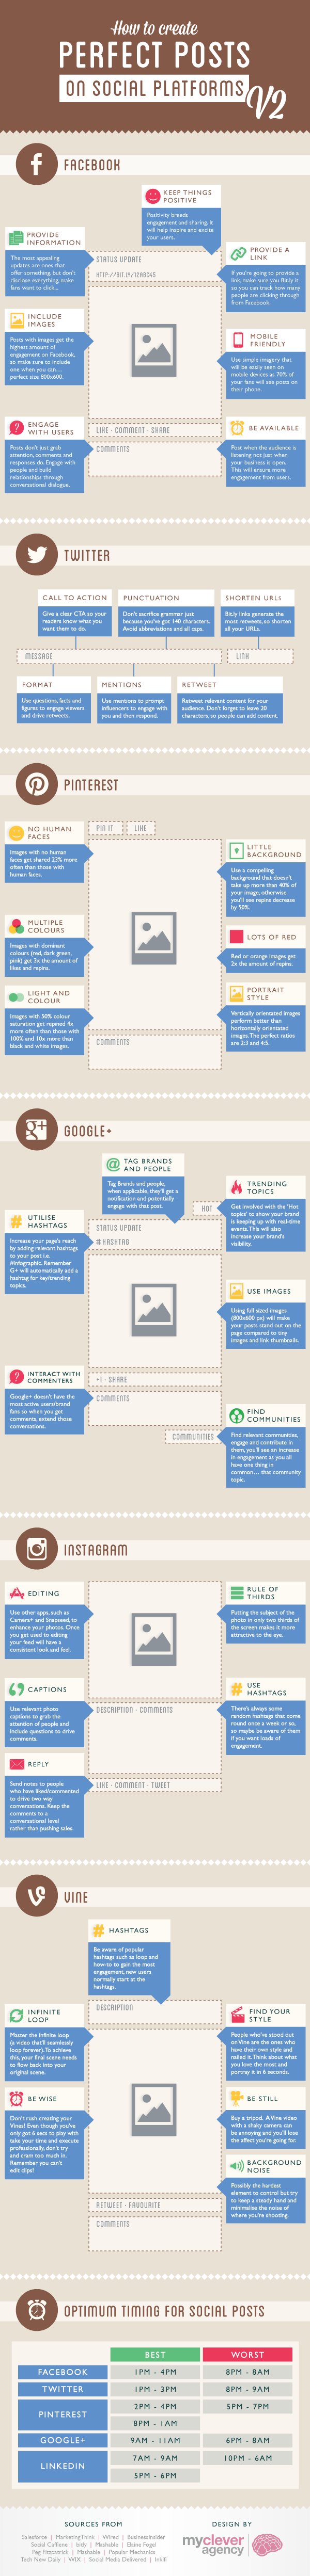 Top Tips for Perfect Social Media Posts [infographic]